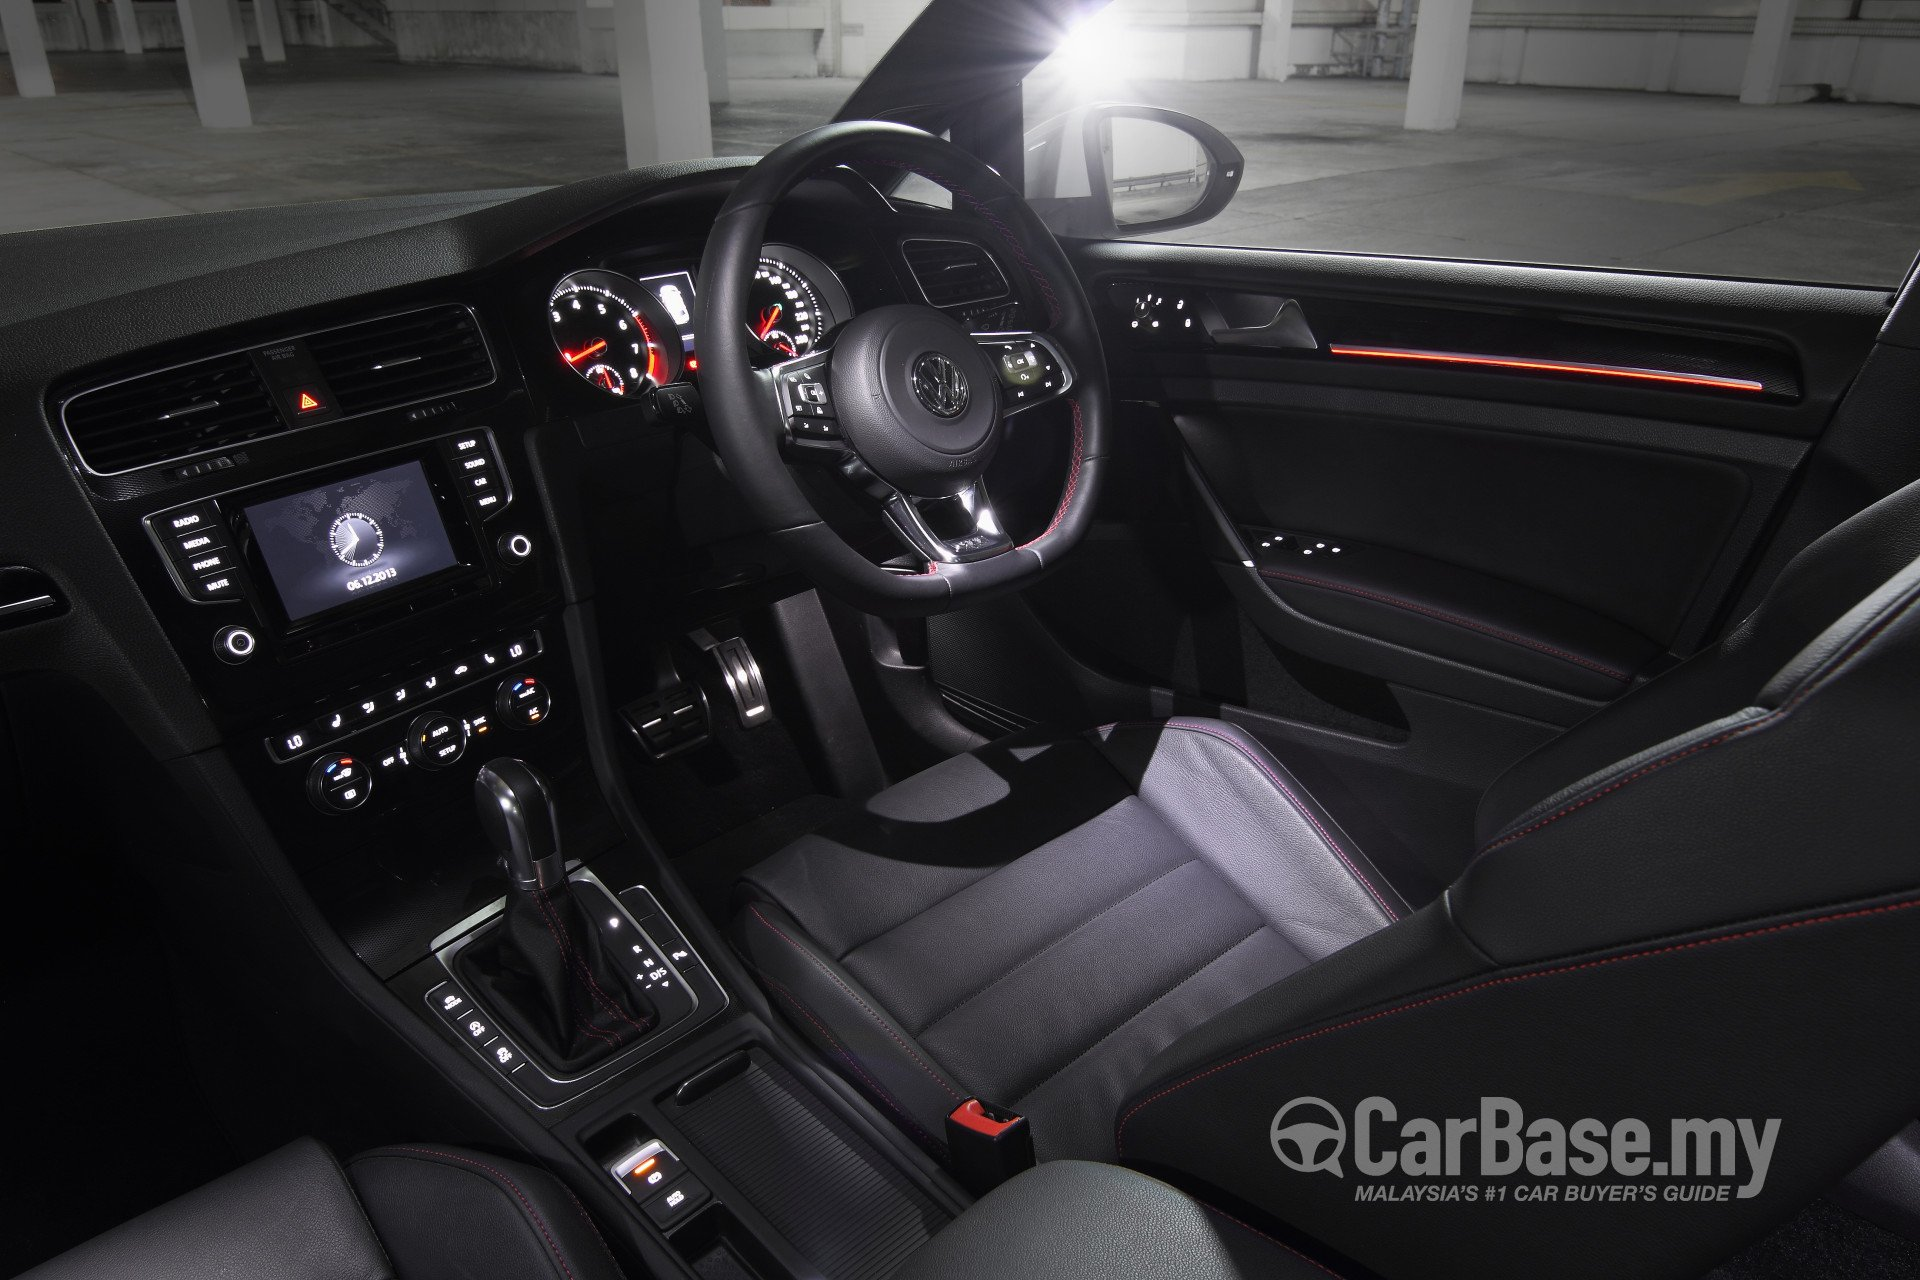 Volkswagen Golf GTI Mk7 (2013) Interior Image in Malaysia - Reviews, Specs, Prices - CarBase.my